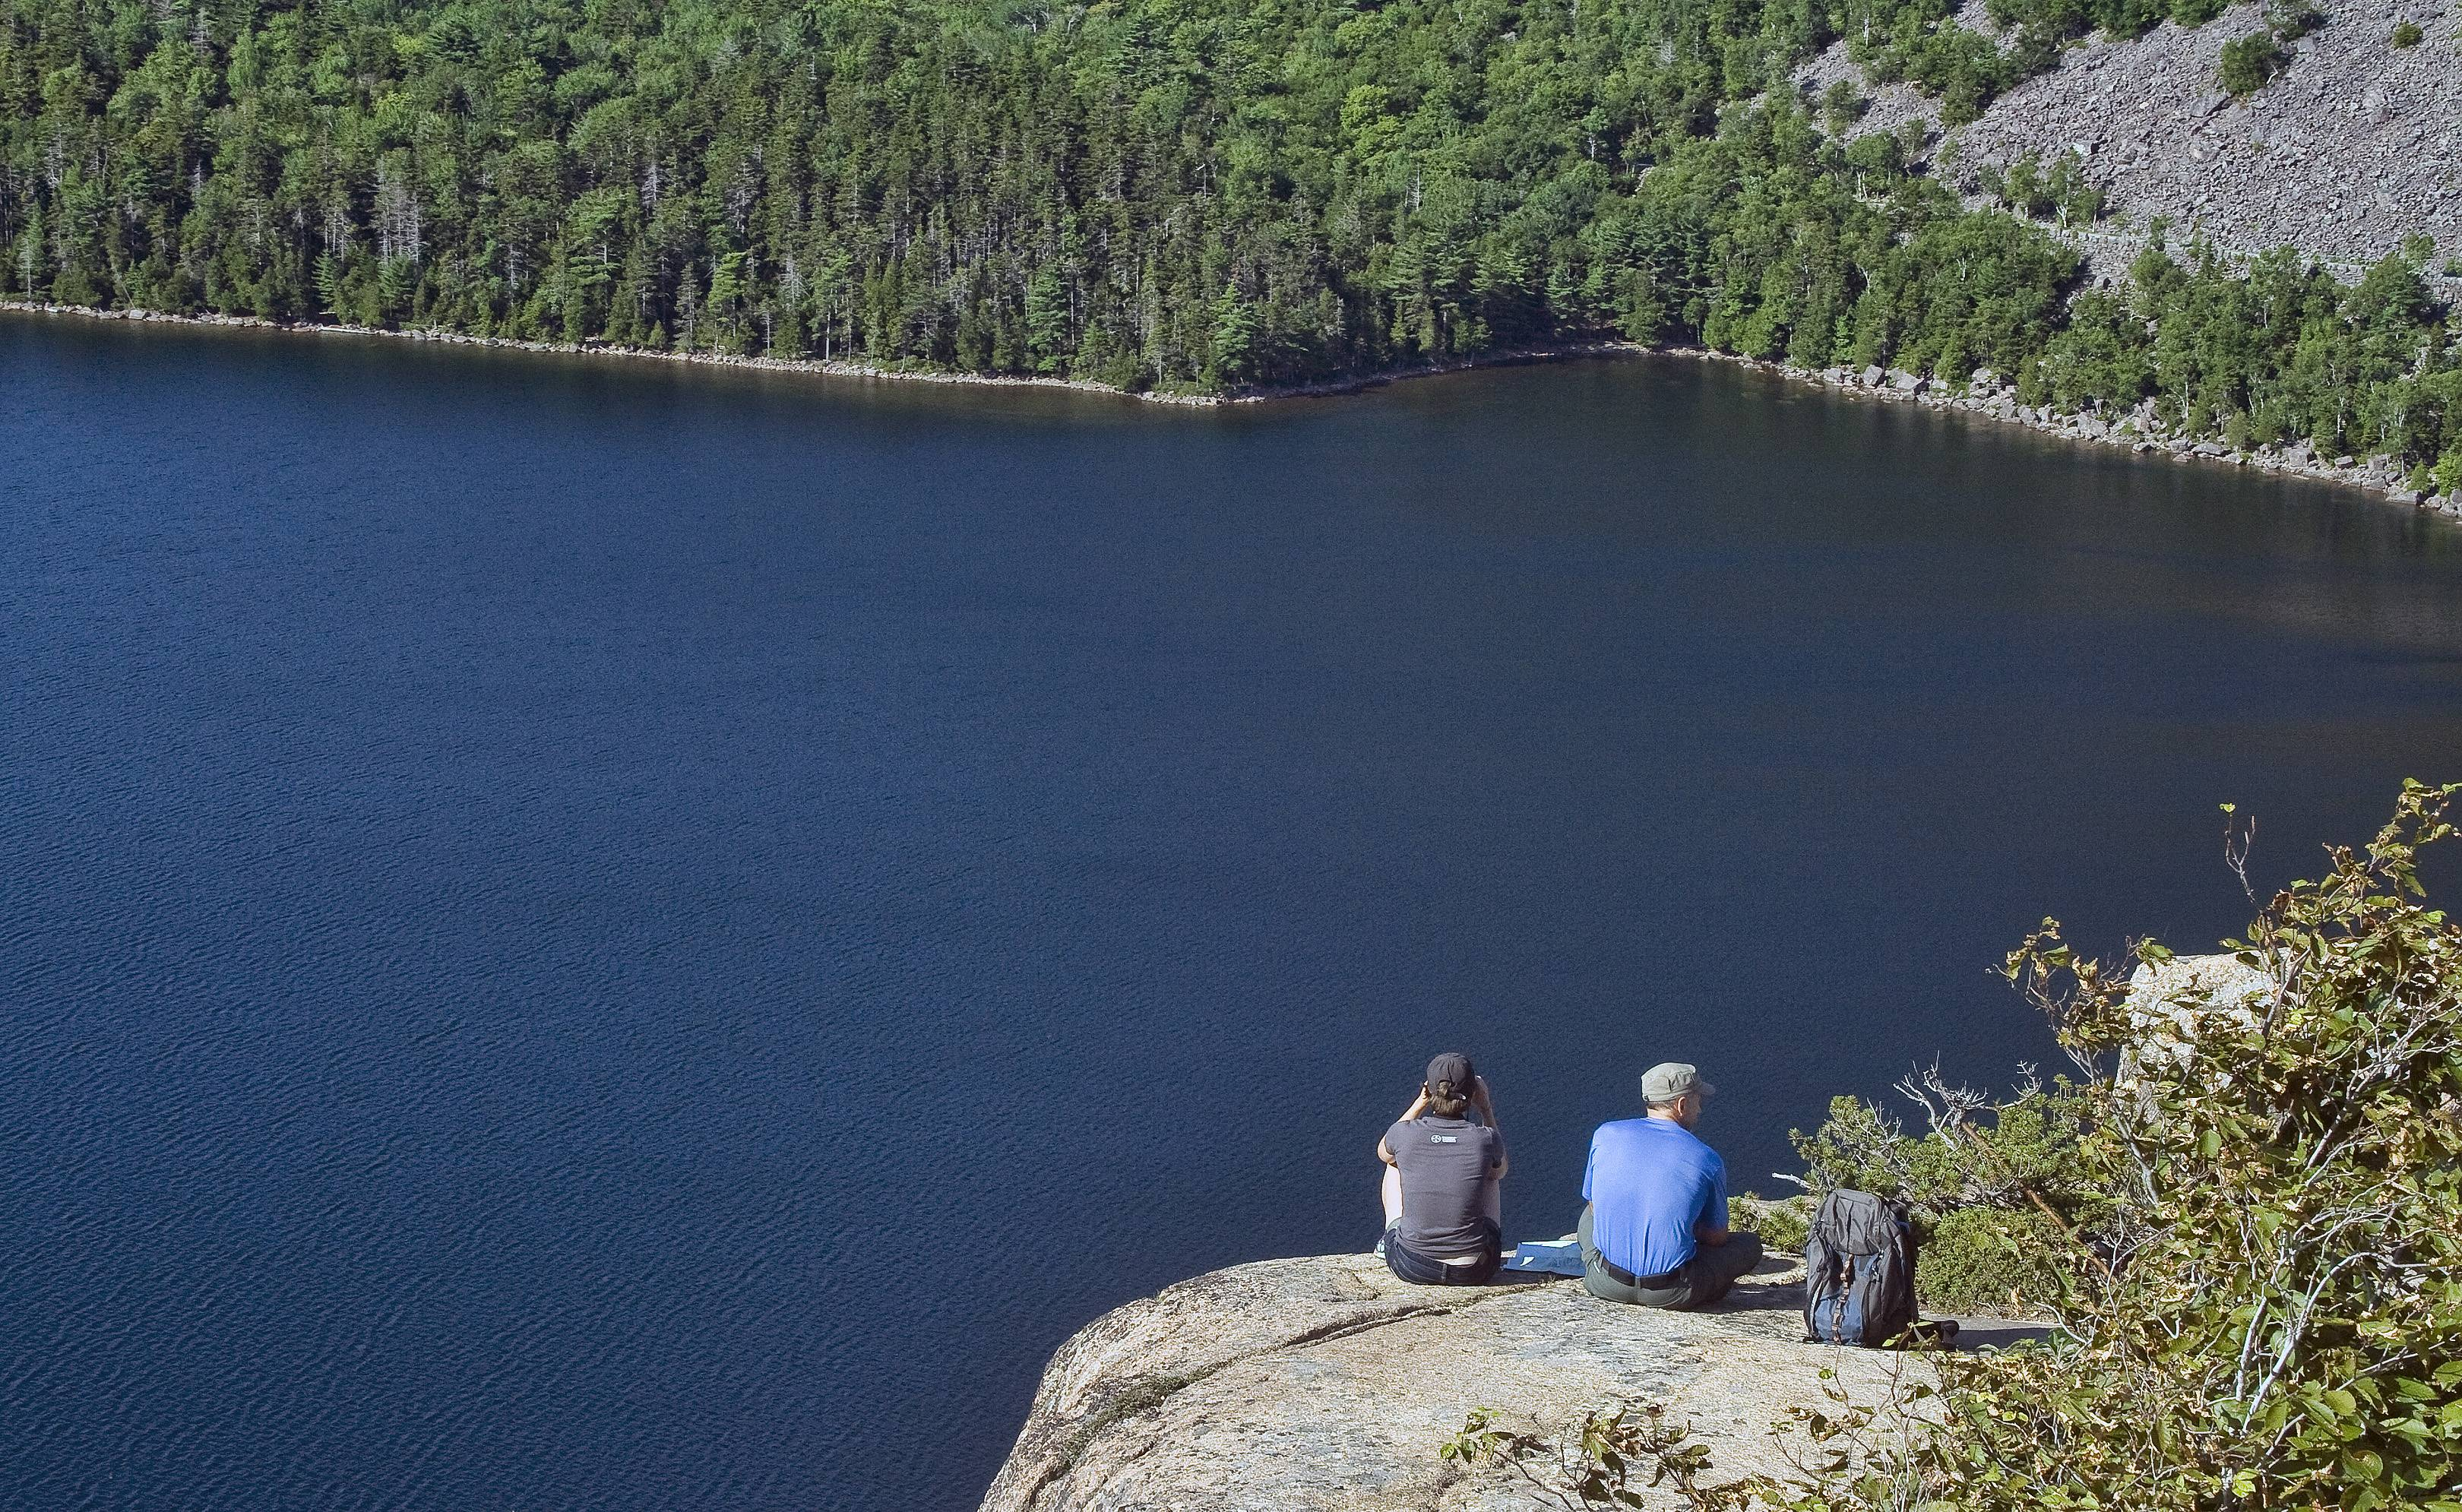 My husband and daughter enjoy the view by sitting together after hiking Bubble Rock in Acadia National Park, Maine. No words necessary, as both enjoy each other's company and the beauty of our National Parks. This was taken with a Canon Rebel XTI, 18-55 mm lens.